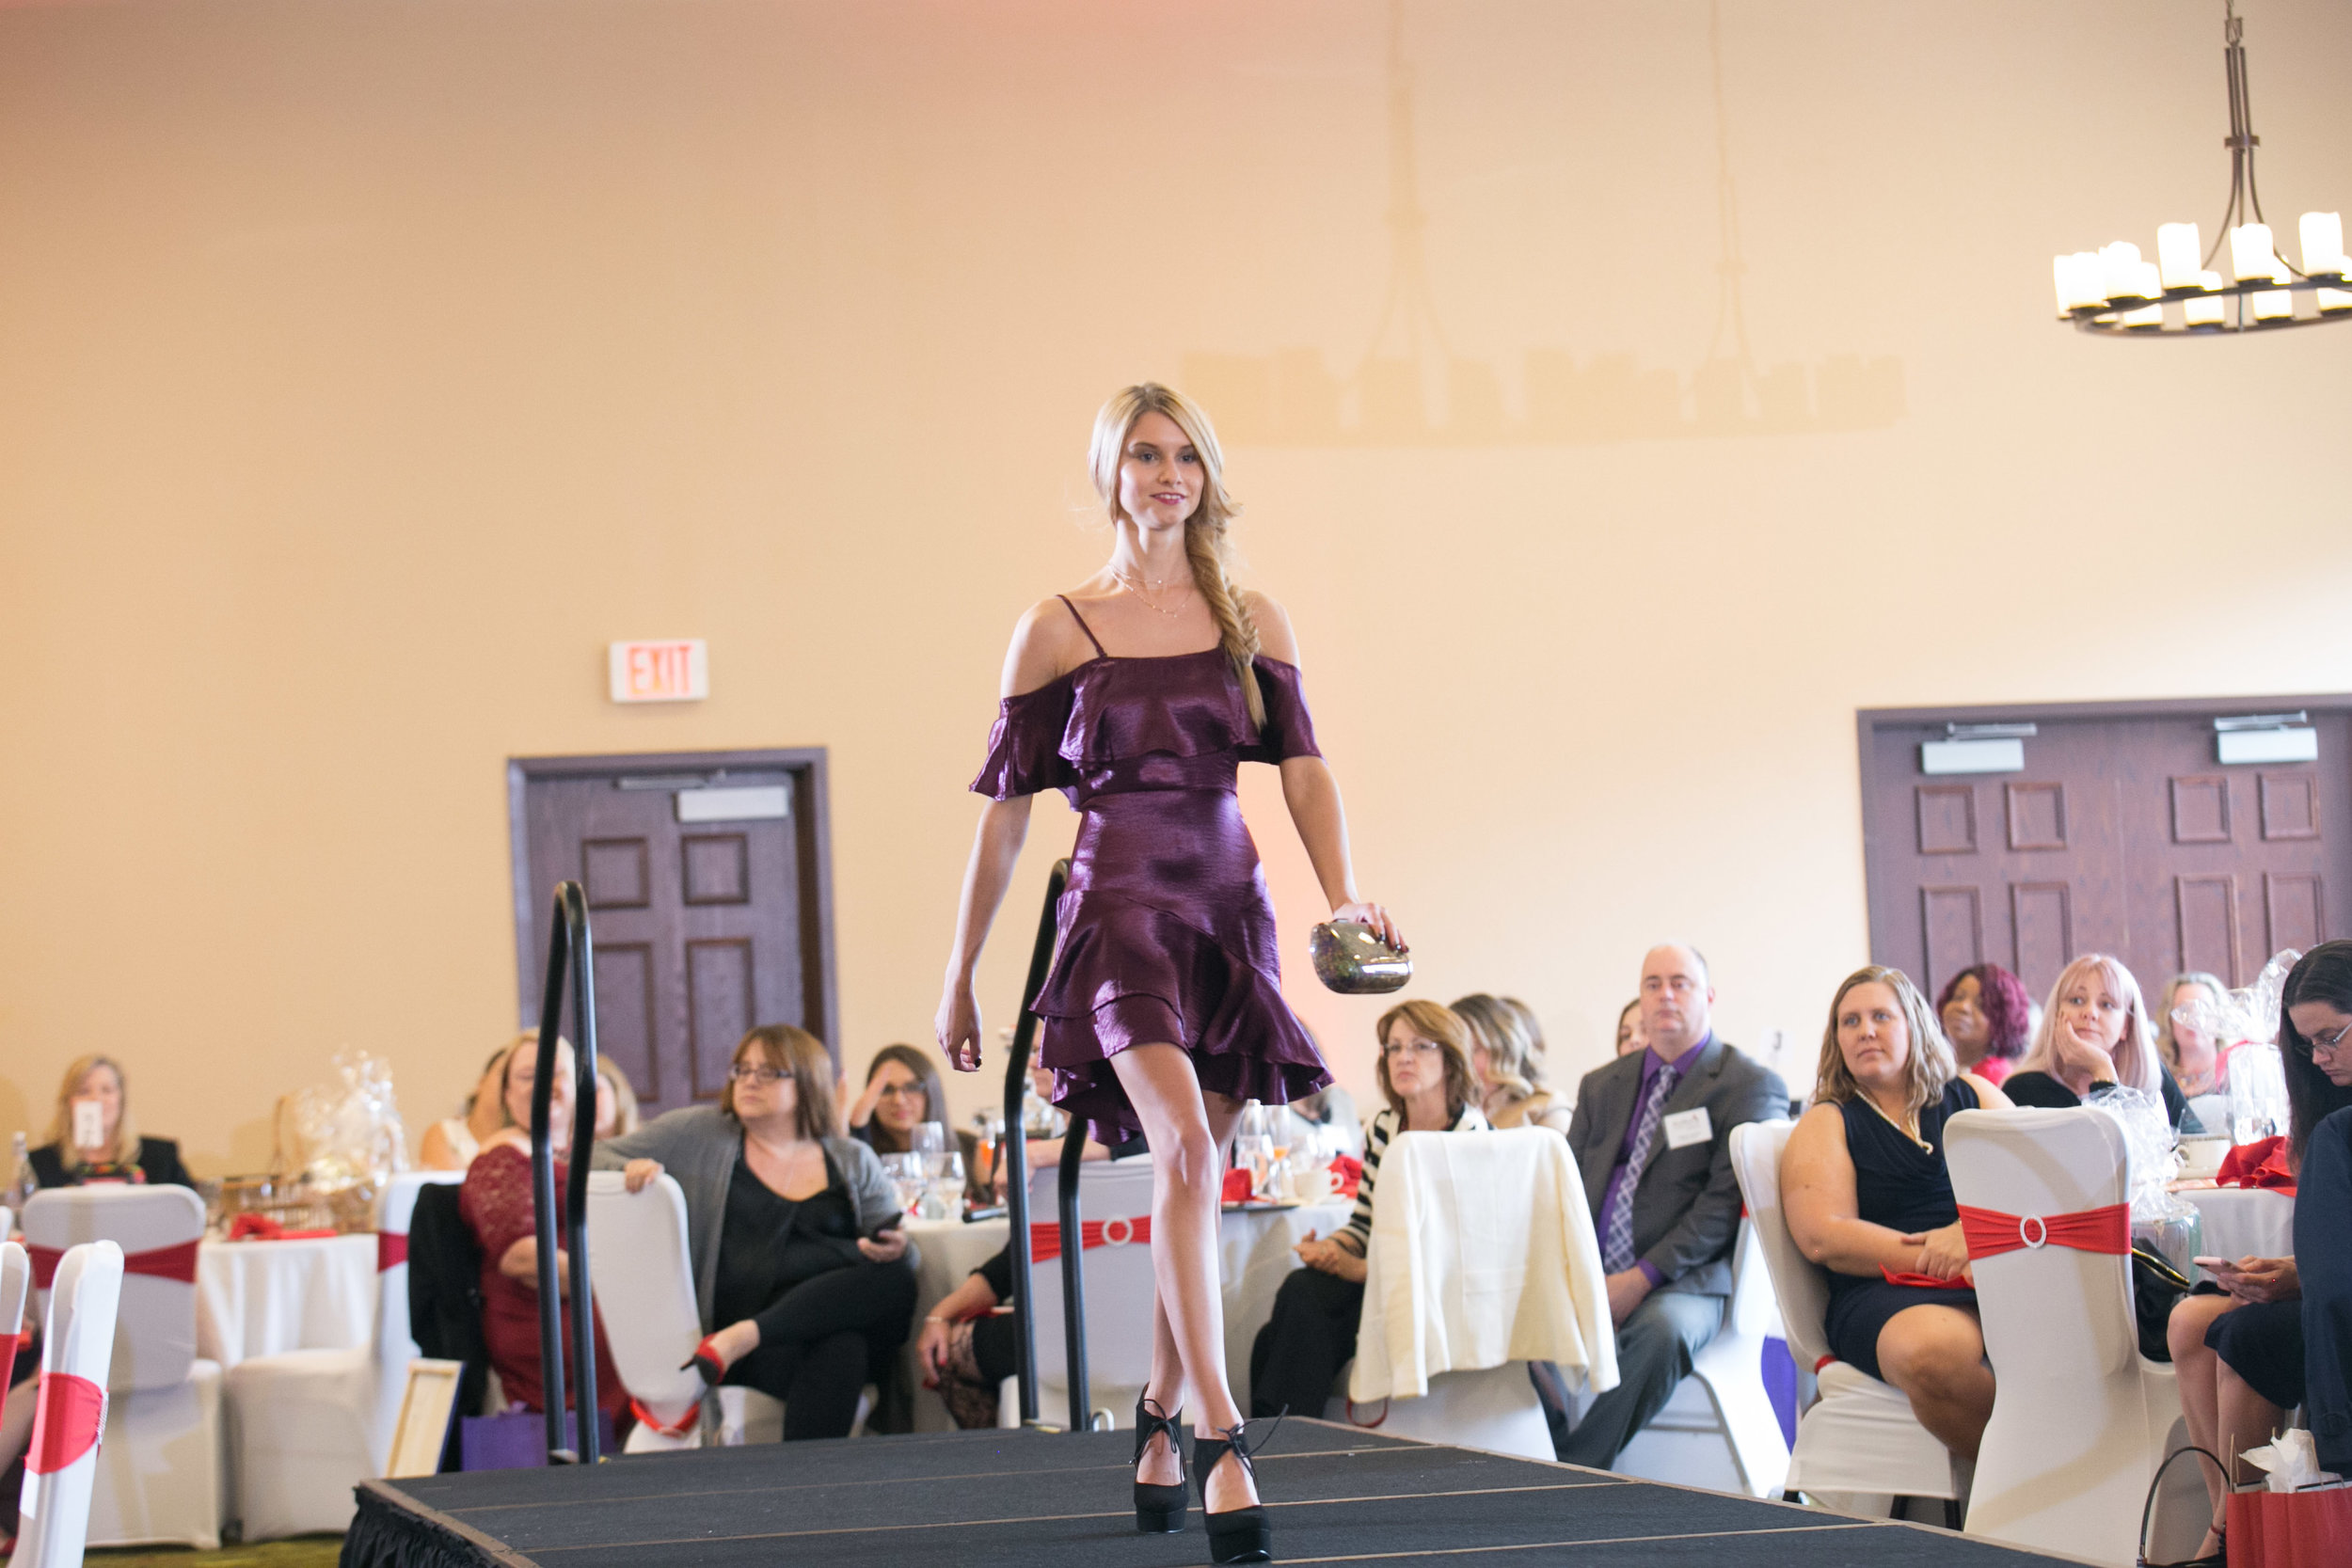 LightMaster-Studios-BWNice-Monroe-Chapter-Red-Shoes-Event-Camelback-lodge-2018-5989.jpg